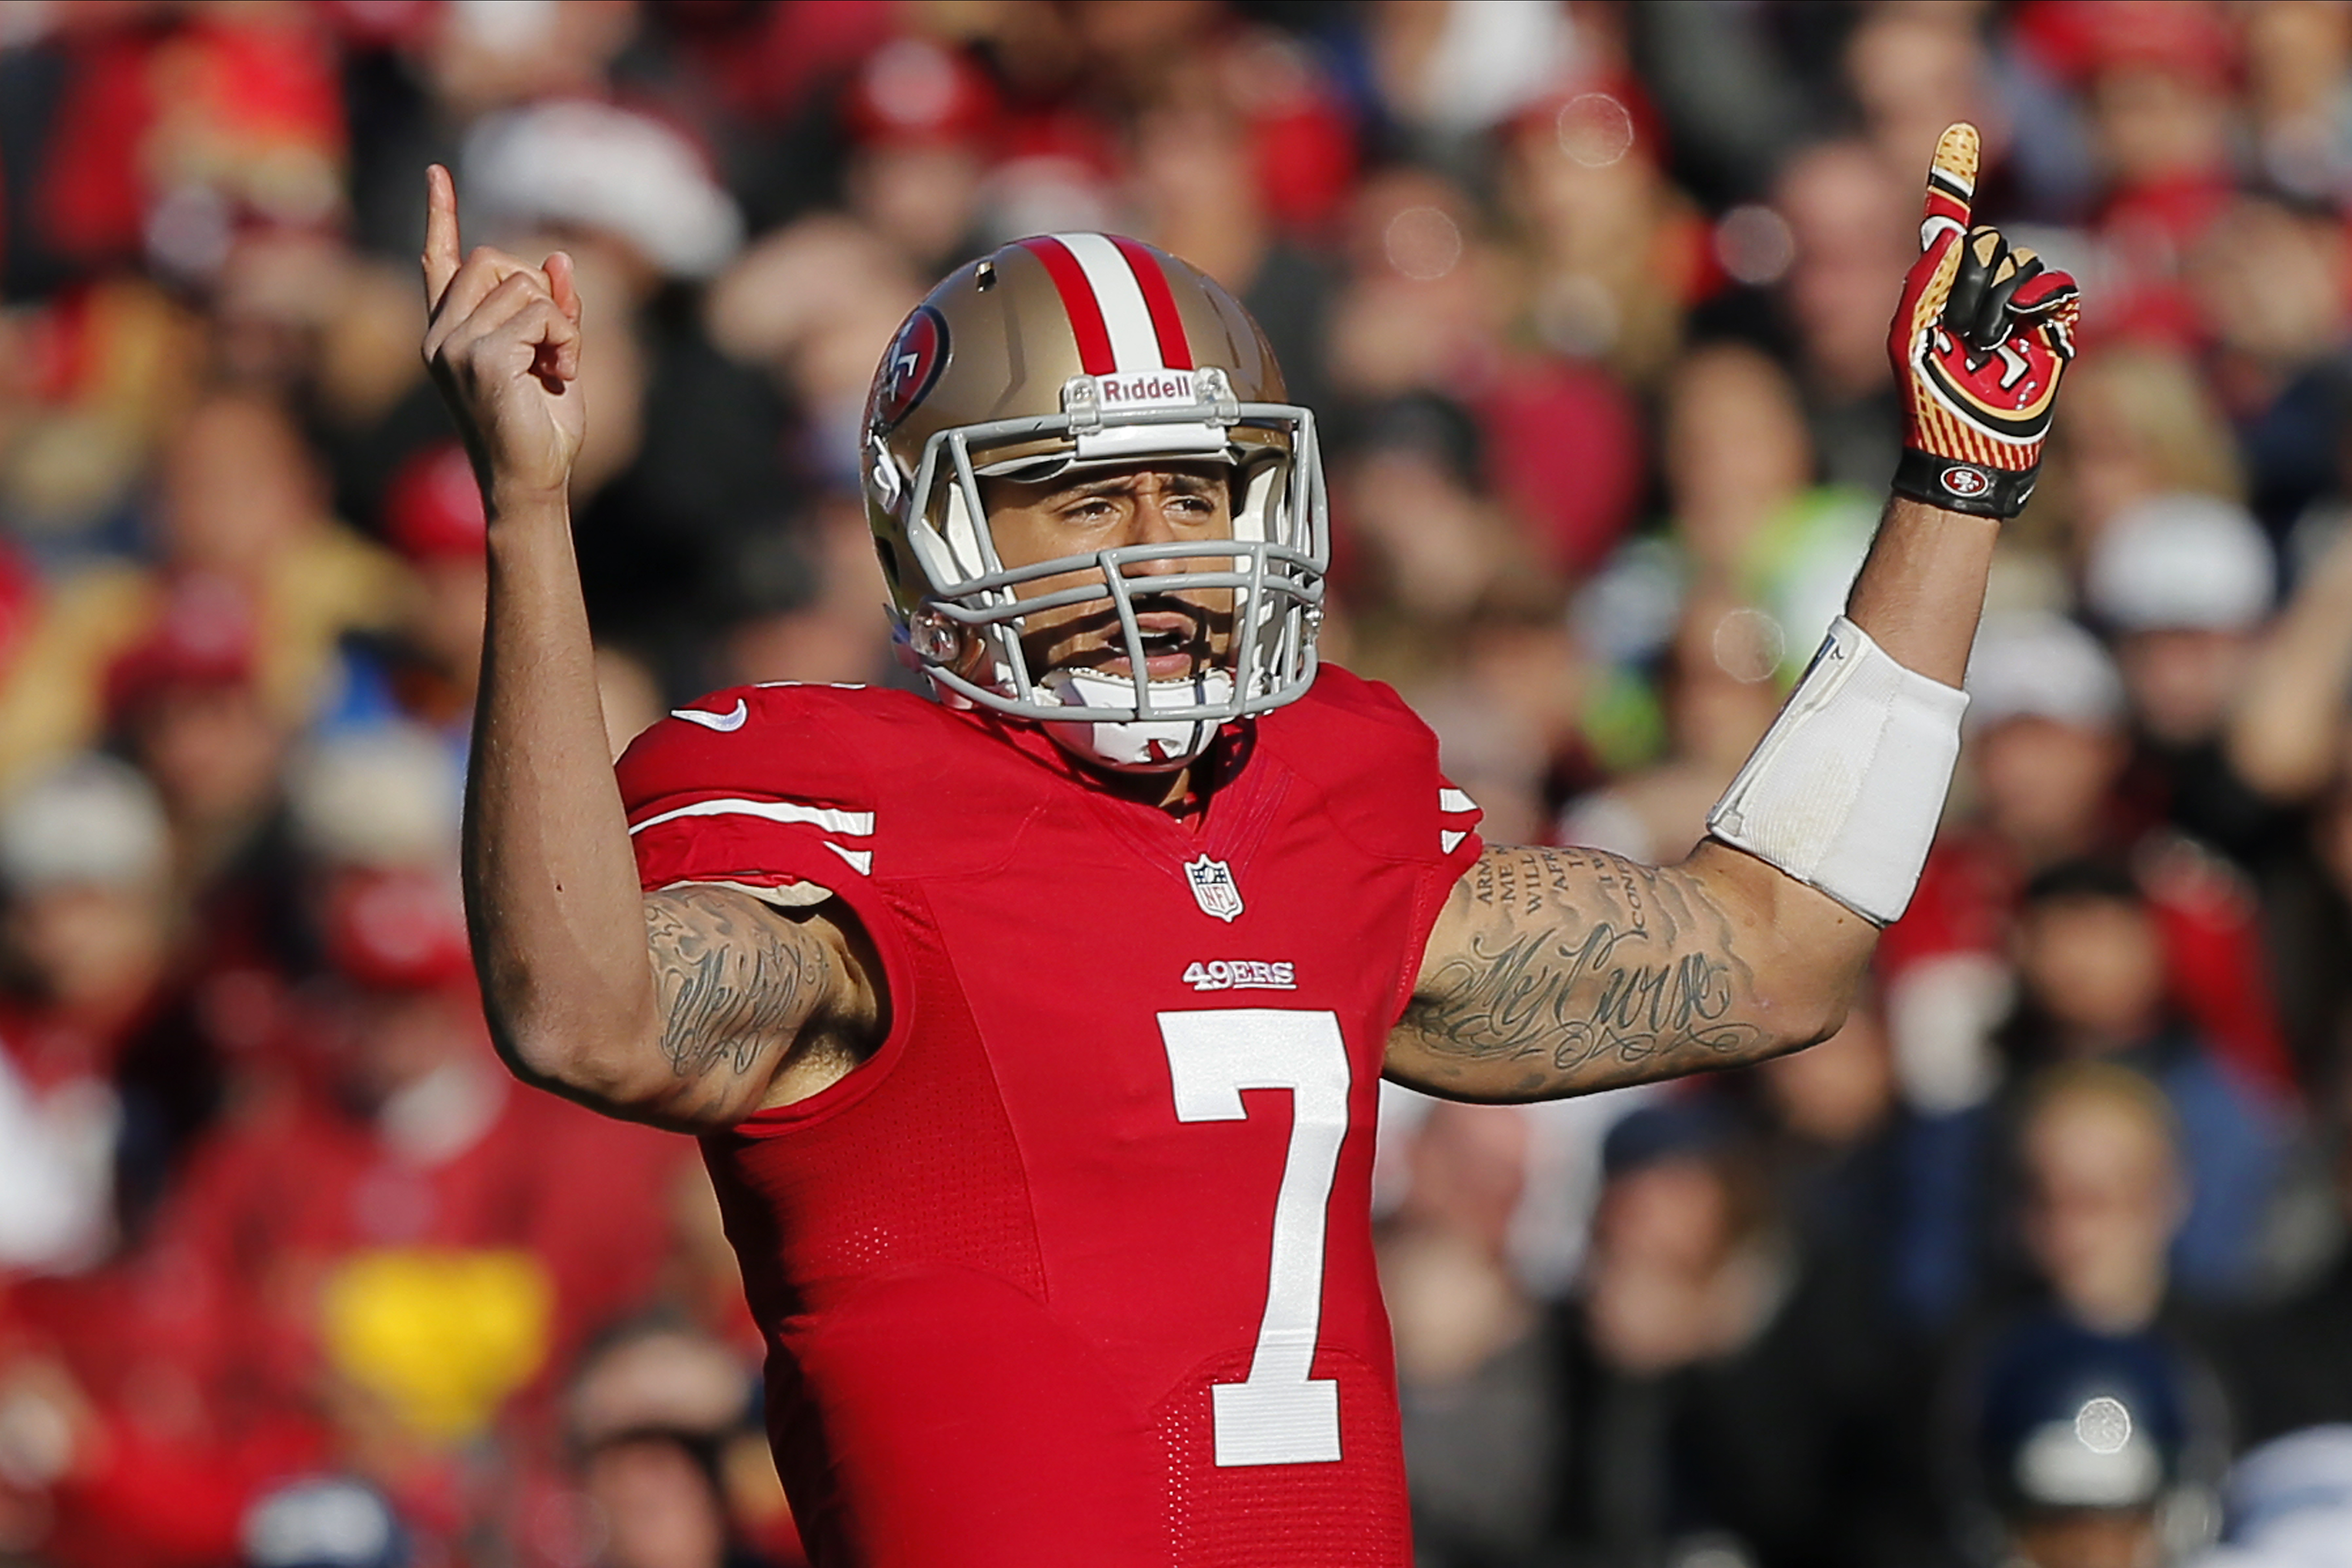 SAN FRANCISCO, CA - DECEMBER 08:  Quarterback Colin Kaepernick #7 of the San Francisco 49ers calls out the play count against the Seattle Seahawks in the first quarter on December 8, 2013 at Candlestick Park in San Francisco, California.  The 49ers won 19-17.  (Photo by Brian Bahr/Getty Images)